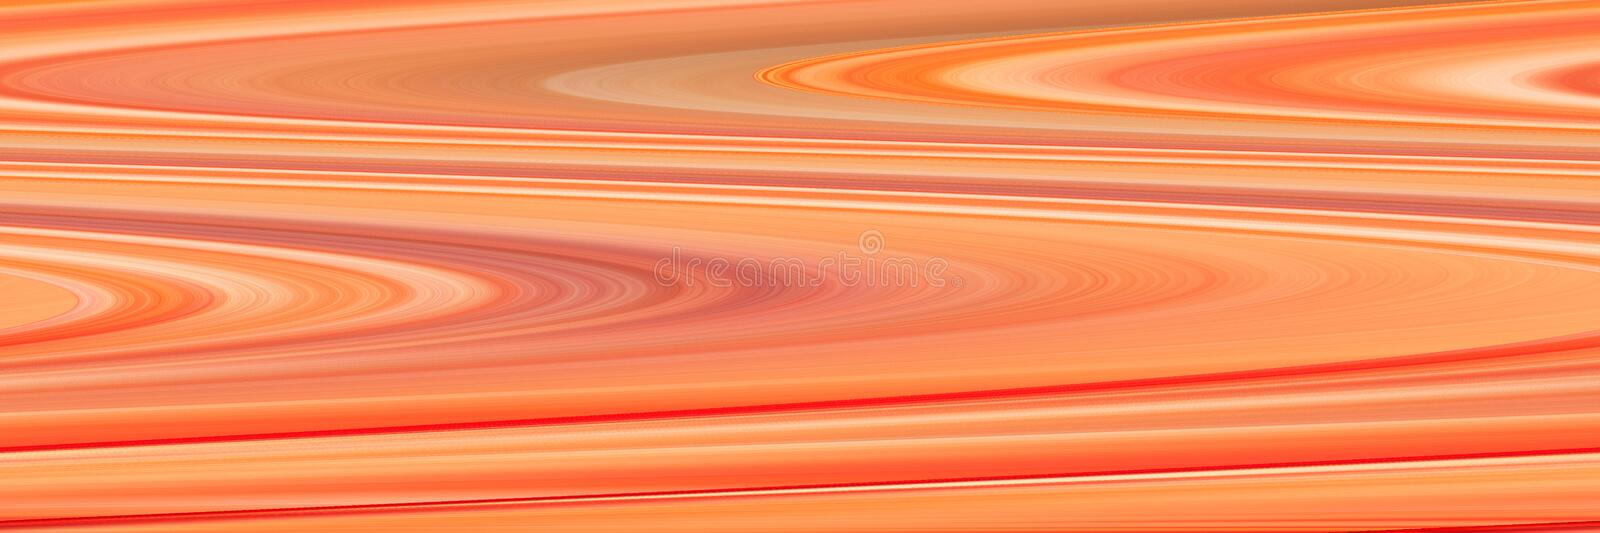 Abstract panoramic orange backdrop. Beautiful background with wavy lines stock photos